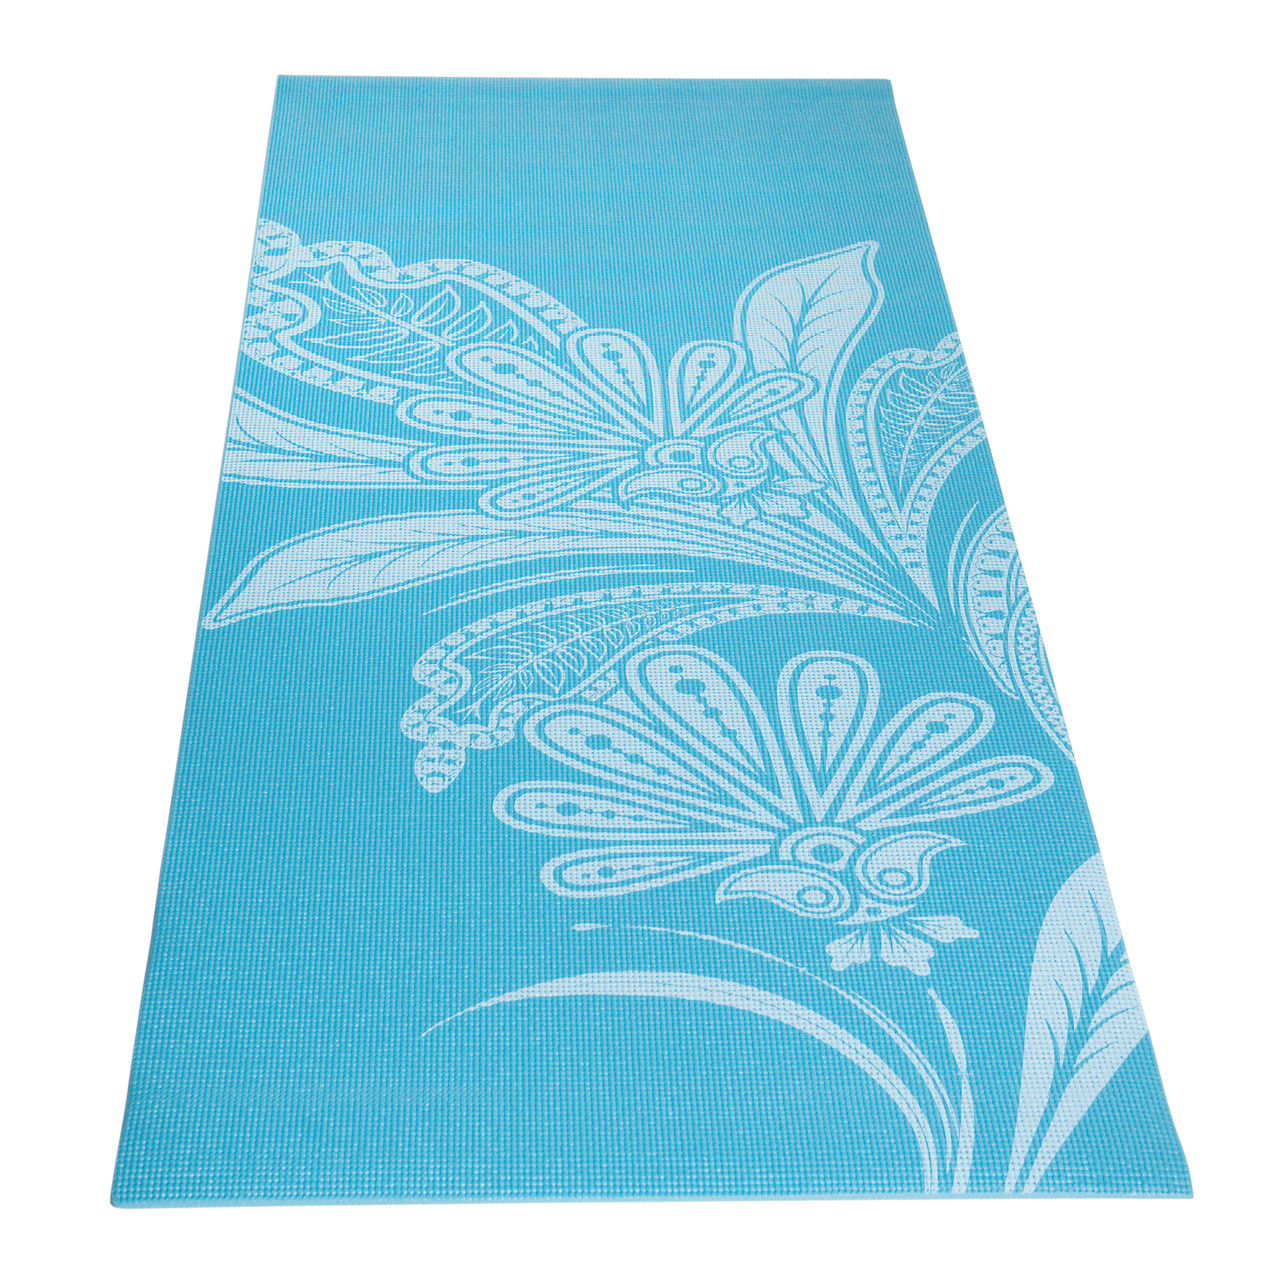 Tone Fitness Floral Patterned Yoga Mat (HHY-TN004T